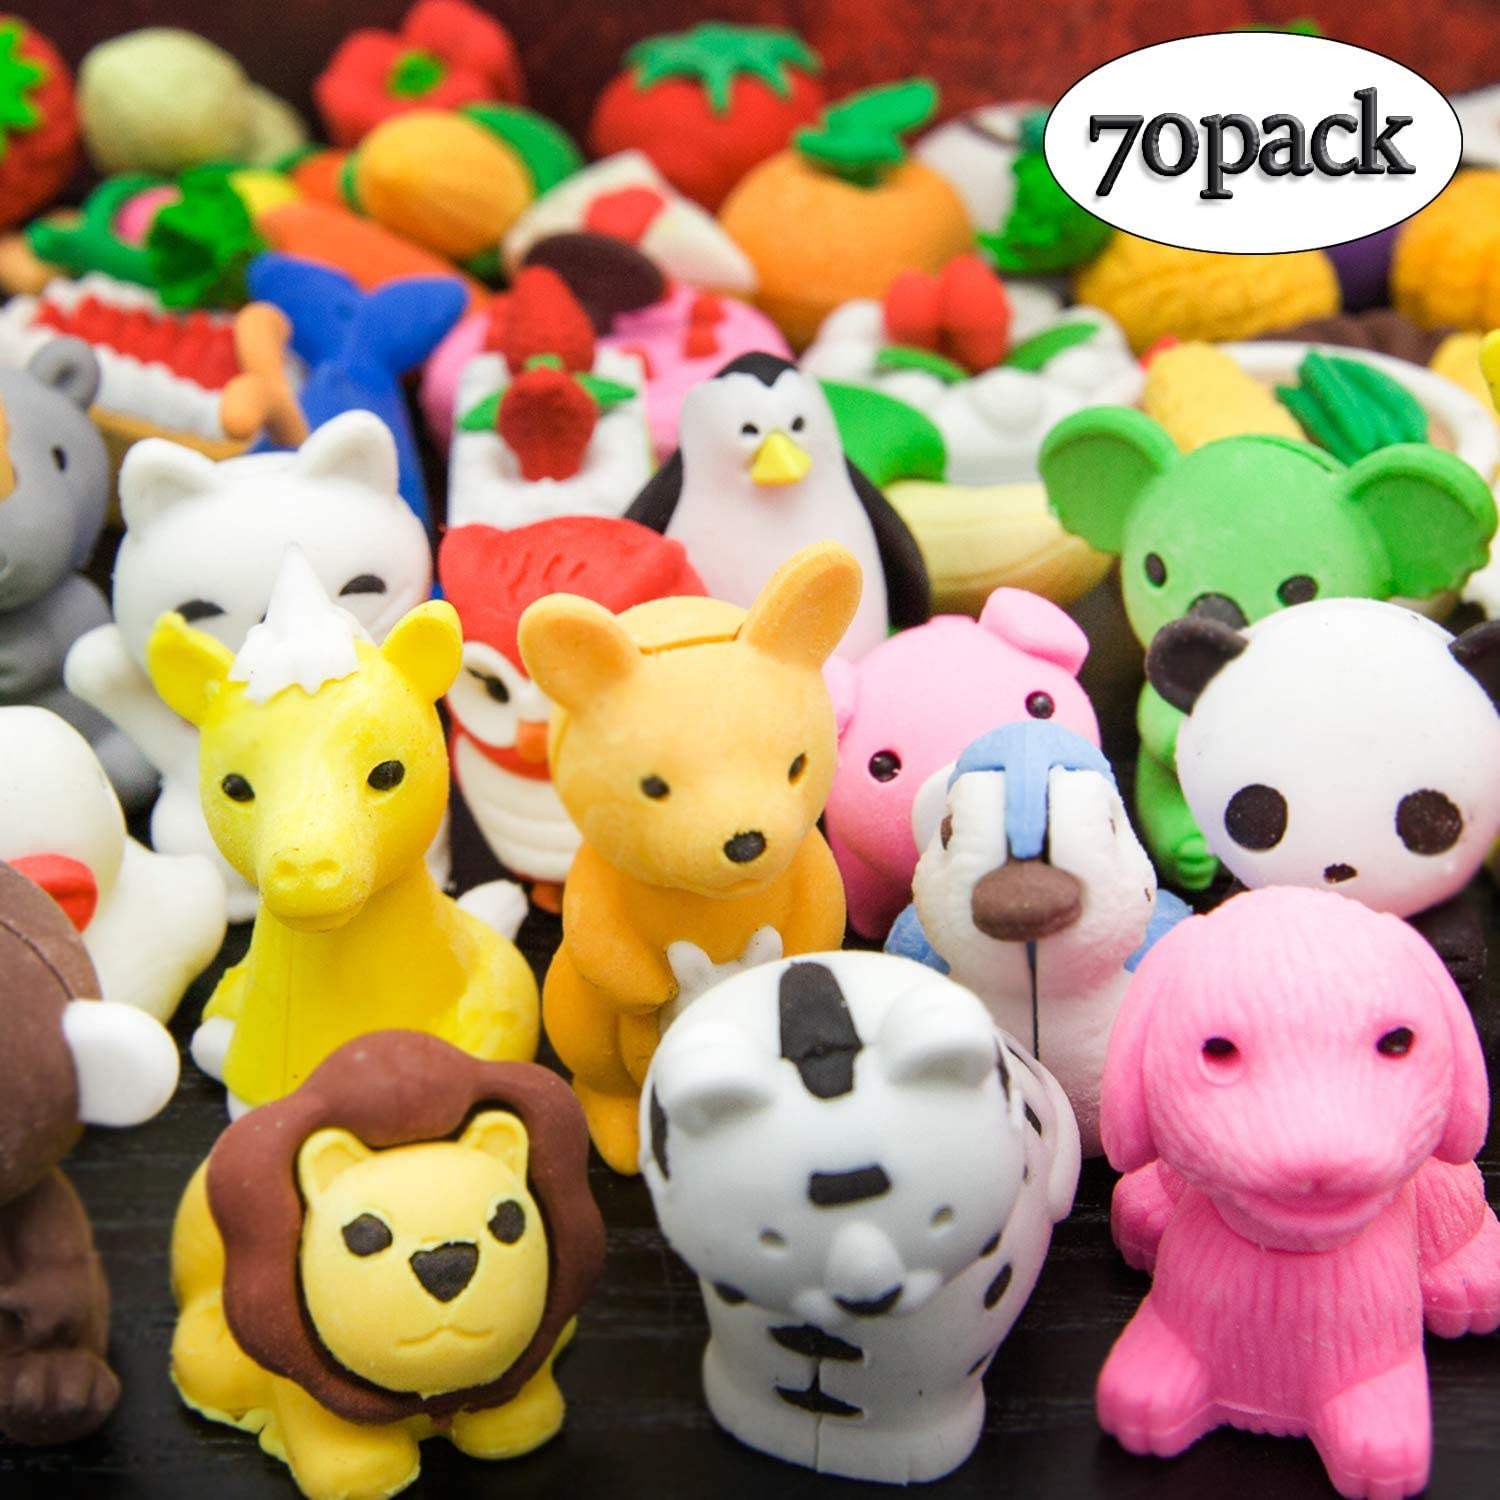 LanMa 70PCS Animal Erasers Japanese Puzzle Food Erasers for Kids Classroom Prizes Party Gifts Pencil Erasers